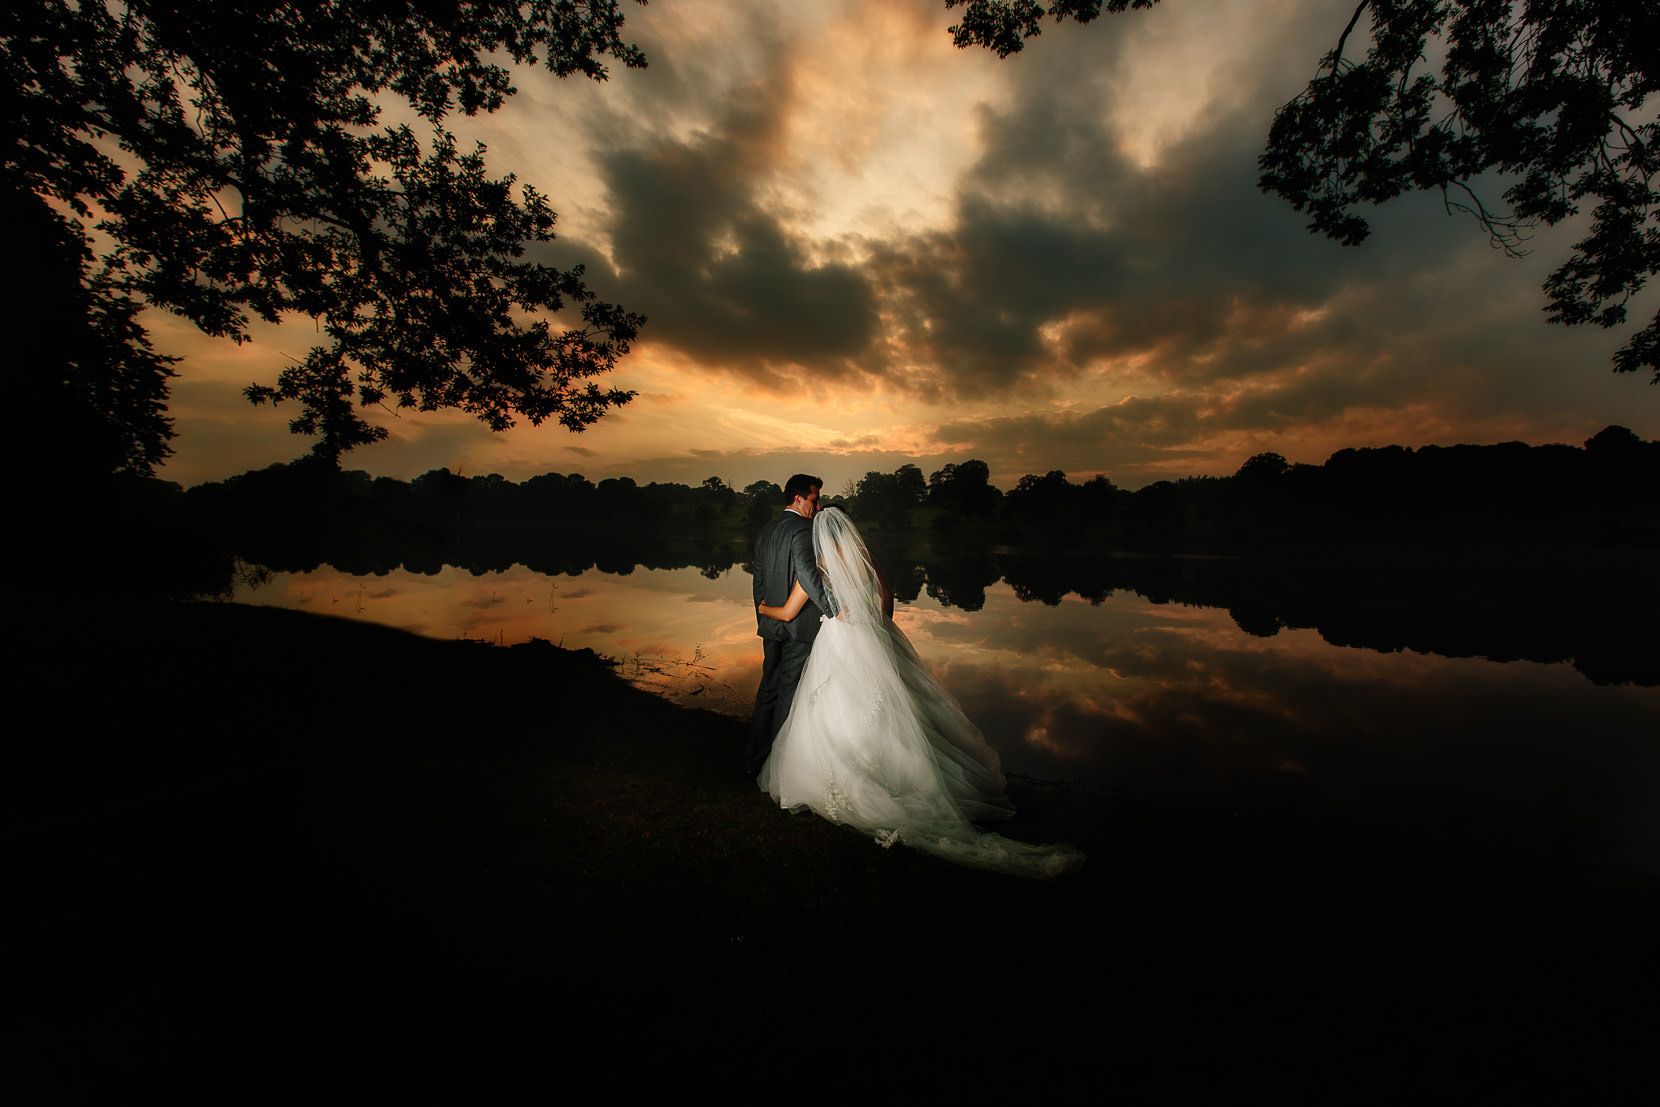 Shropshire Wedding Photography with a bride and groom in a stunning sunset at Combermere Abbey